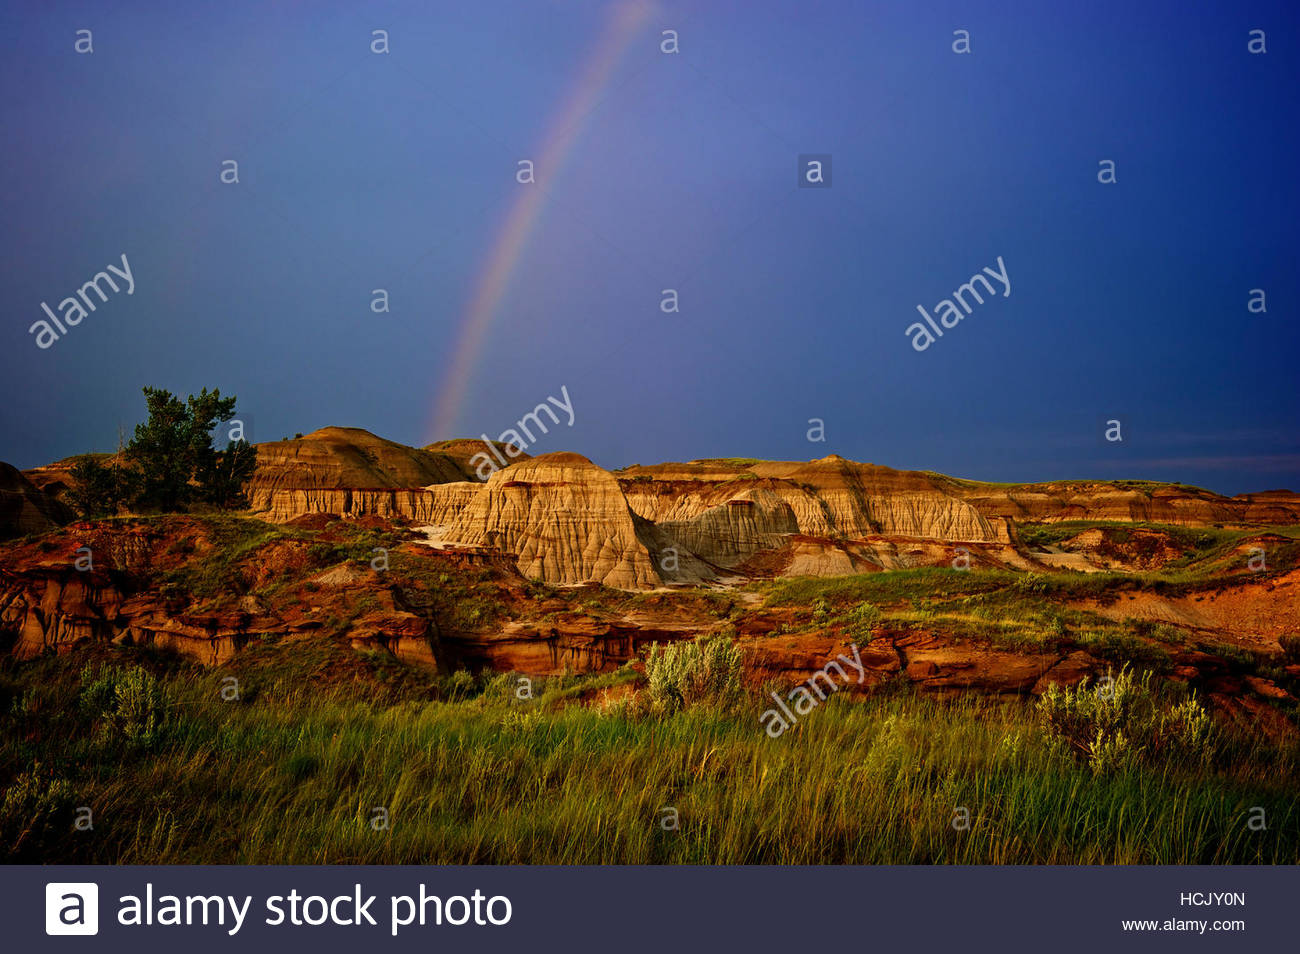 The evening light shines on a rainbow in the badlands at Dinosaur Provincial Park in Alberta, Canada. - Stock Image